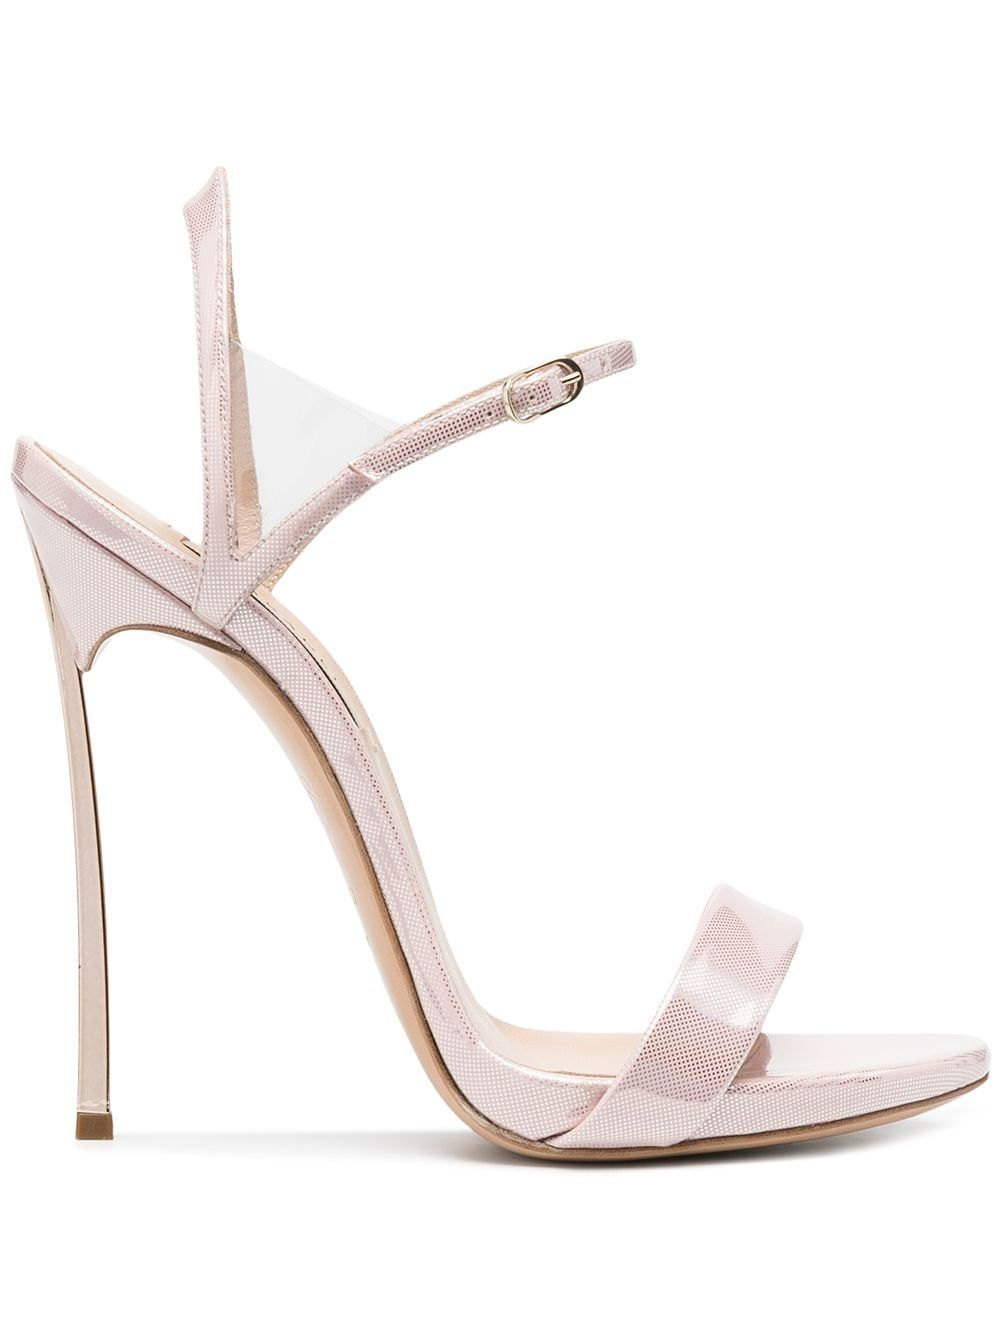 Casadei Leathers CASADEI WOMEN'S PINK LEATHER SANDALS